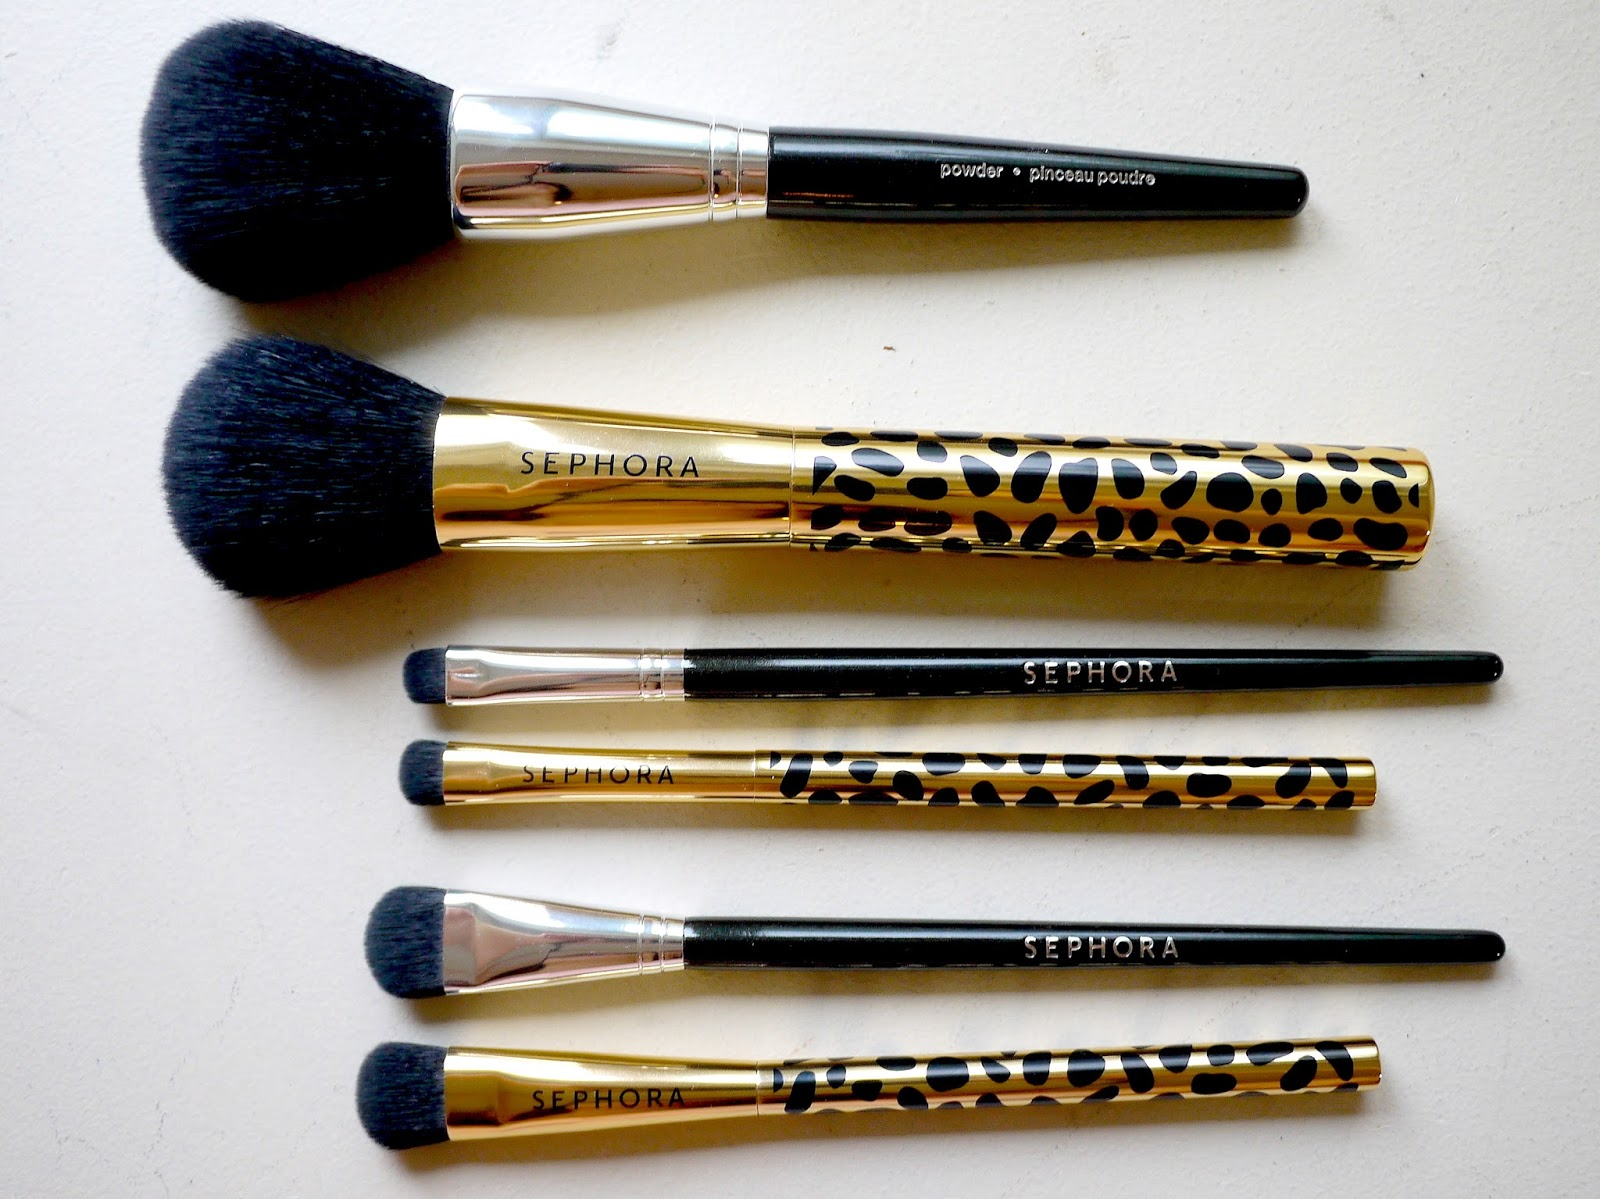 Sephora Face the Day: Full Face Brush Set and Gold Den Brush Set review comparison